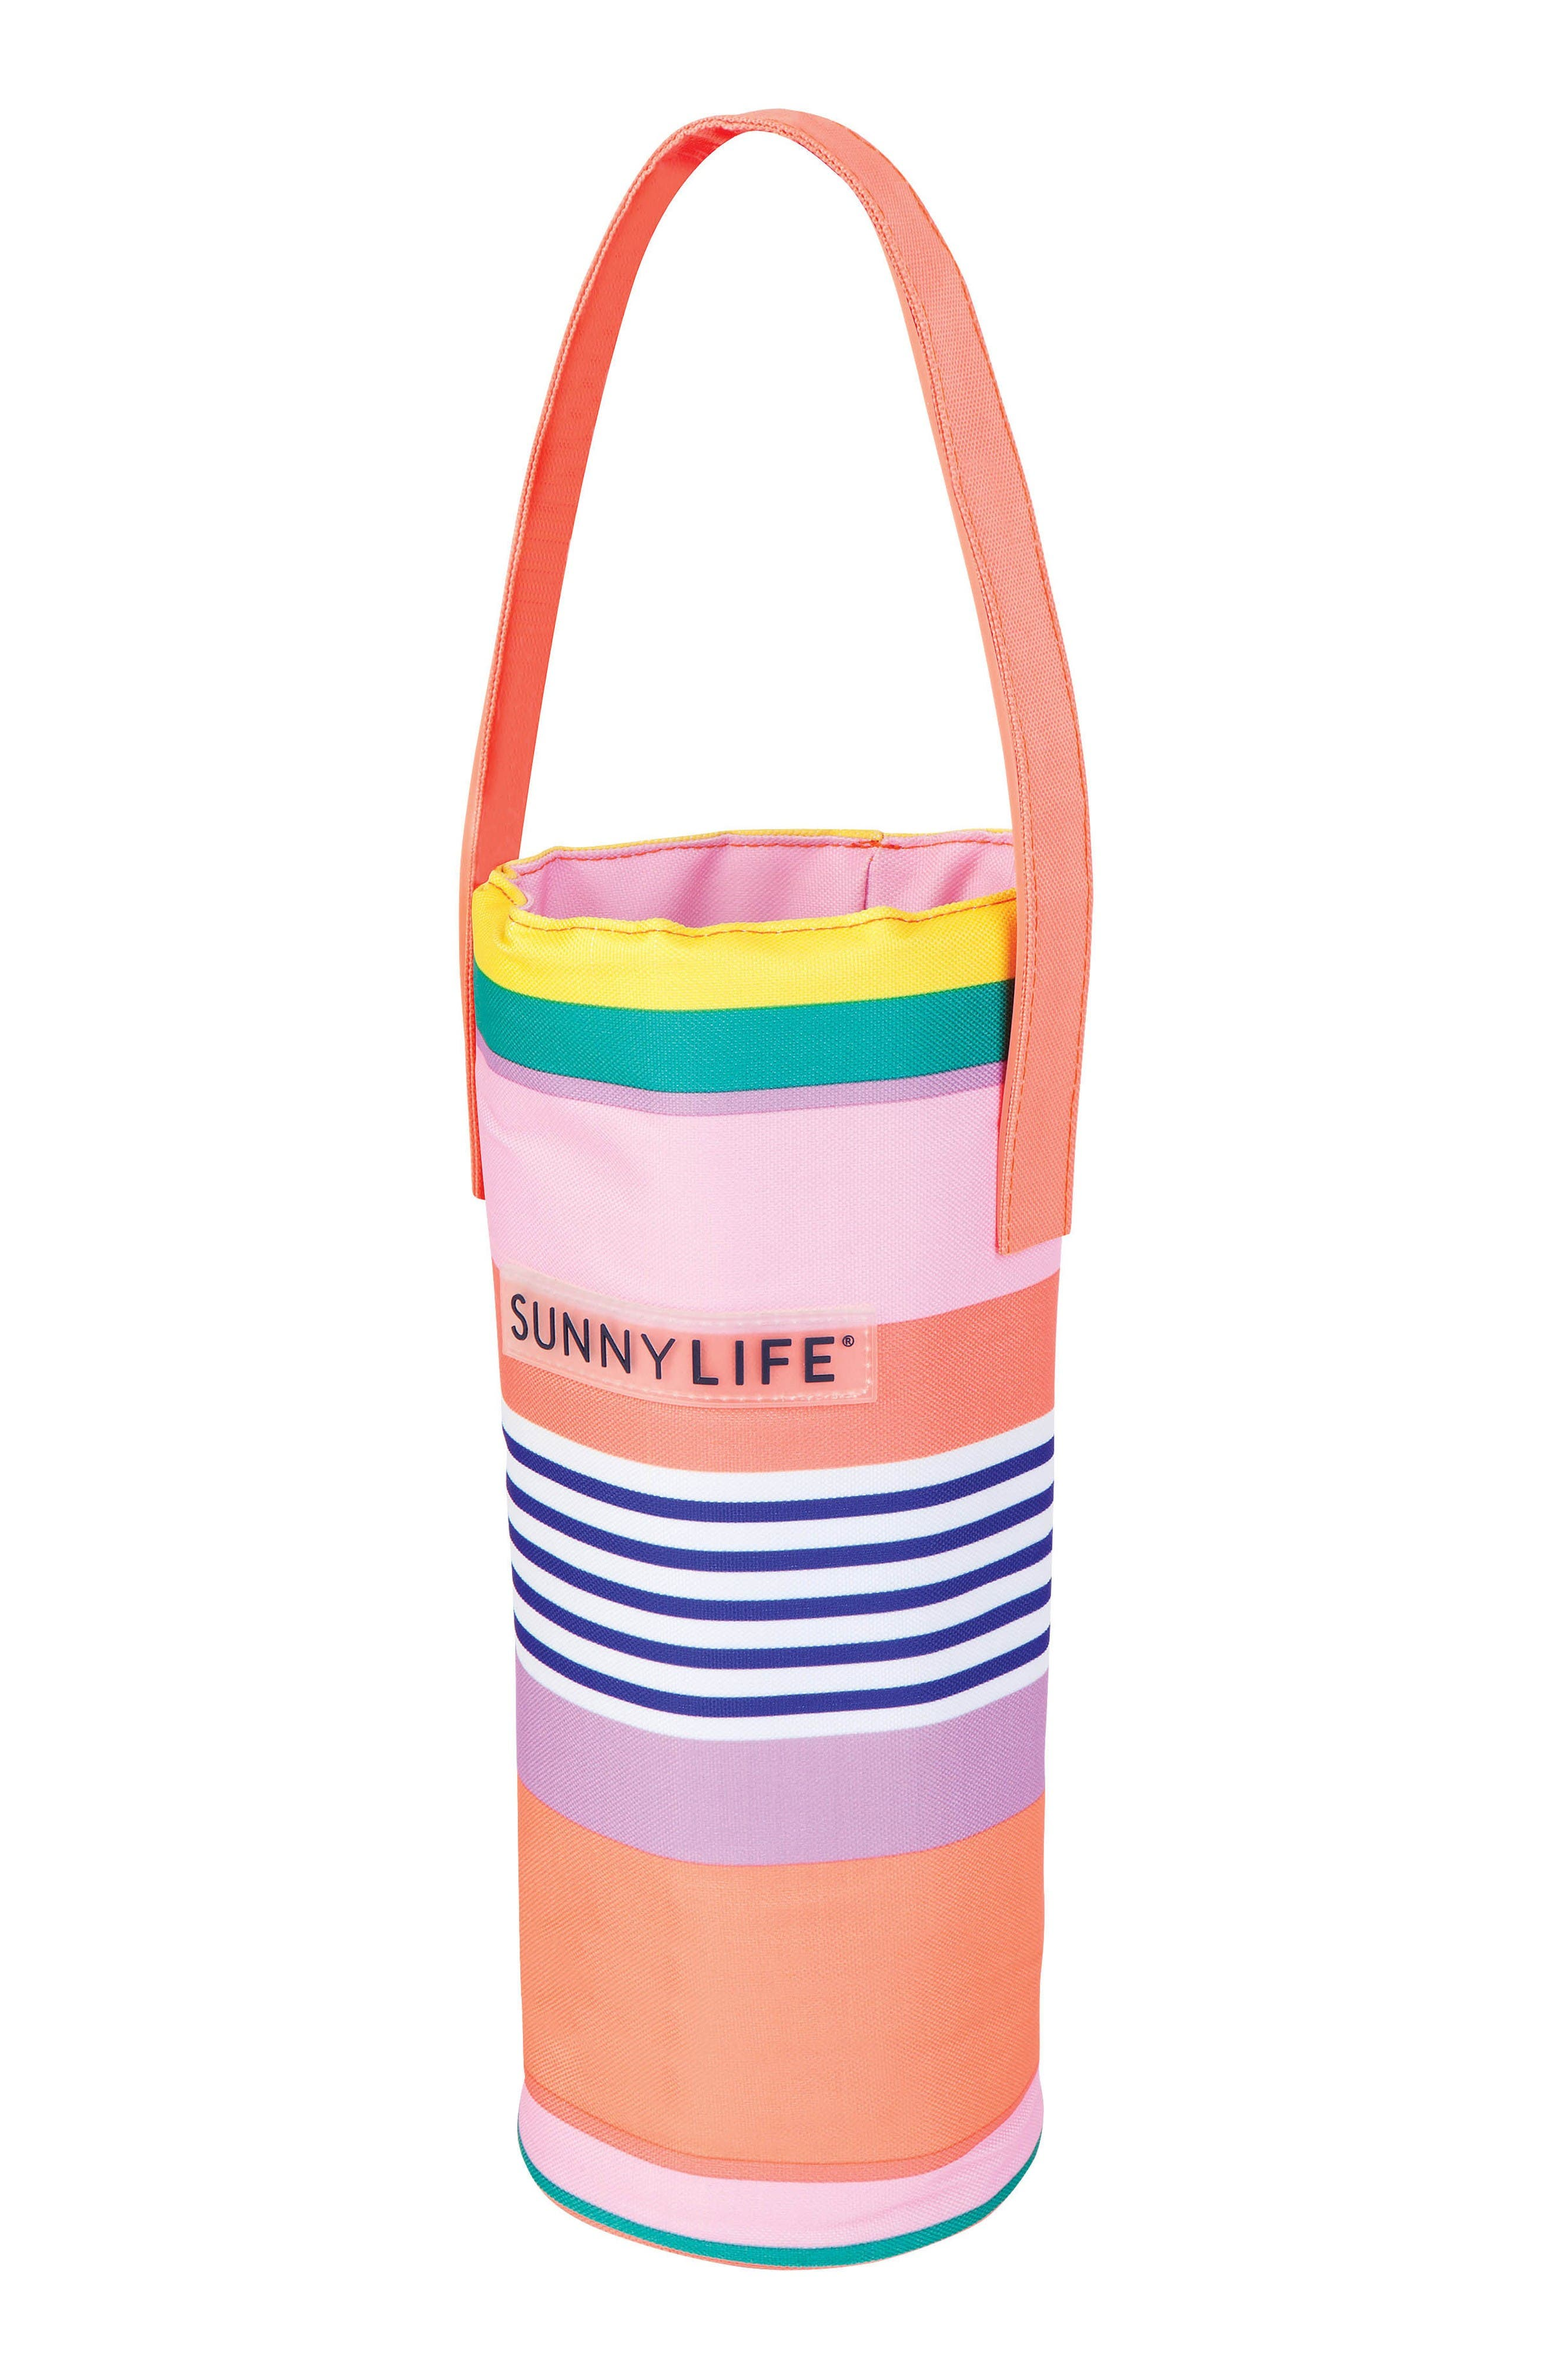 Sunnylife Wine Bottle Tote